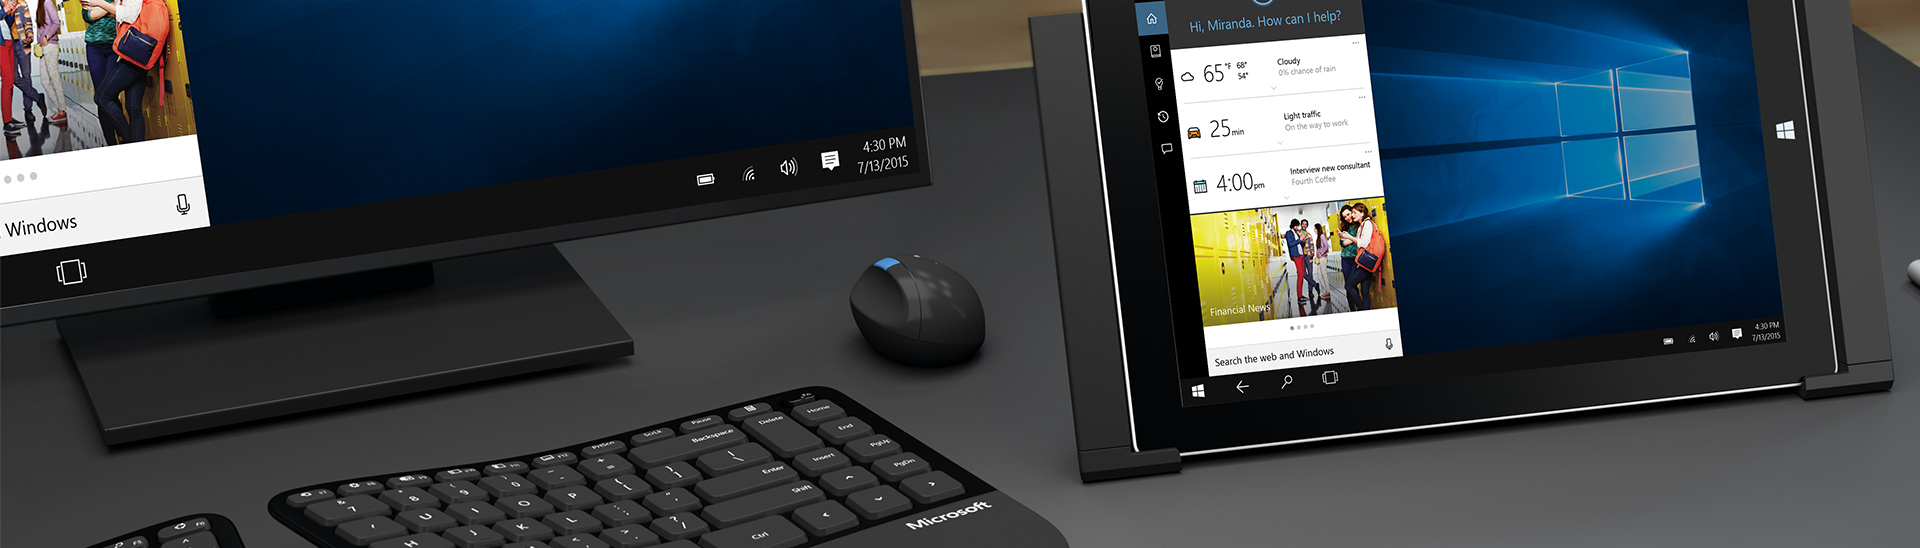 Microsoft Surface in a Surface dock with a wireless keyboard and mouse in front of a monitor.